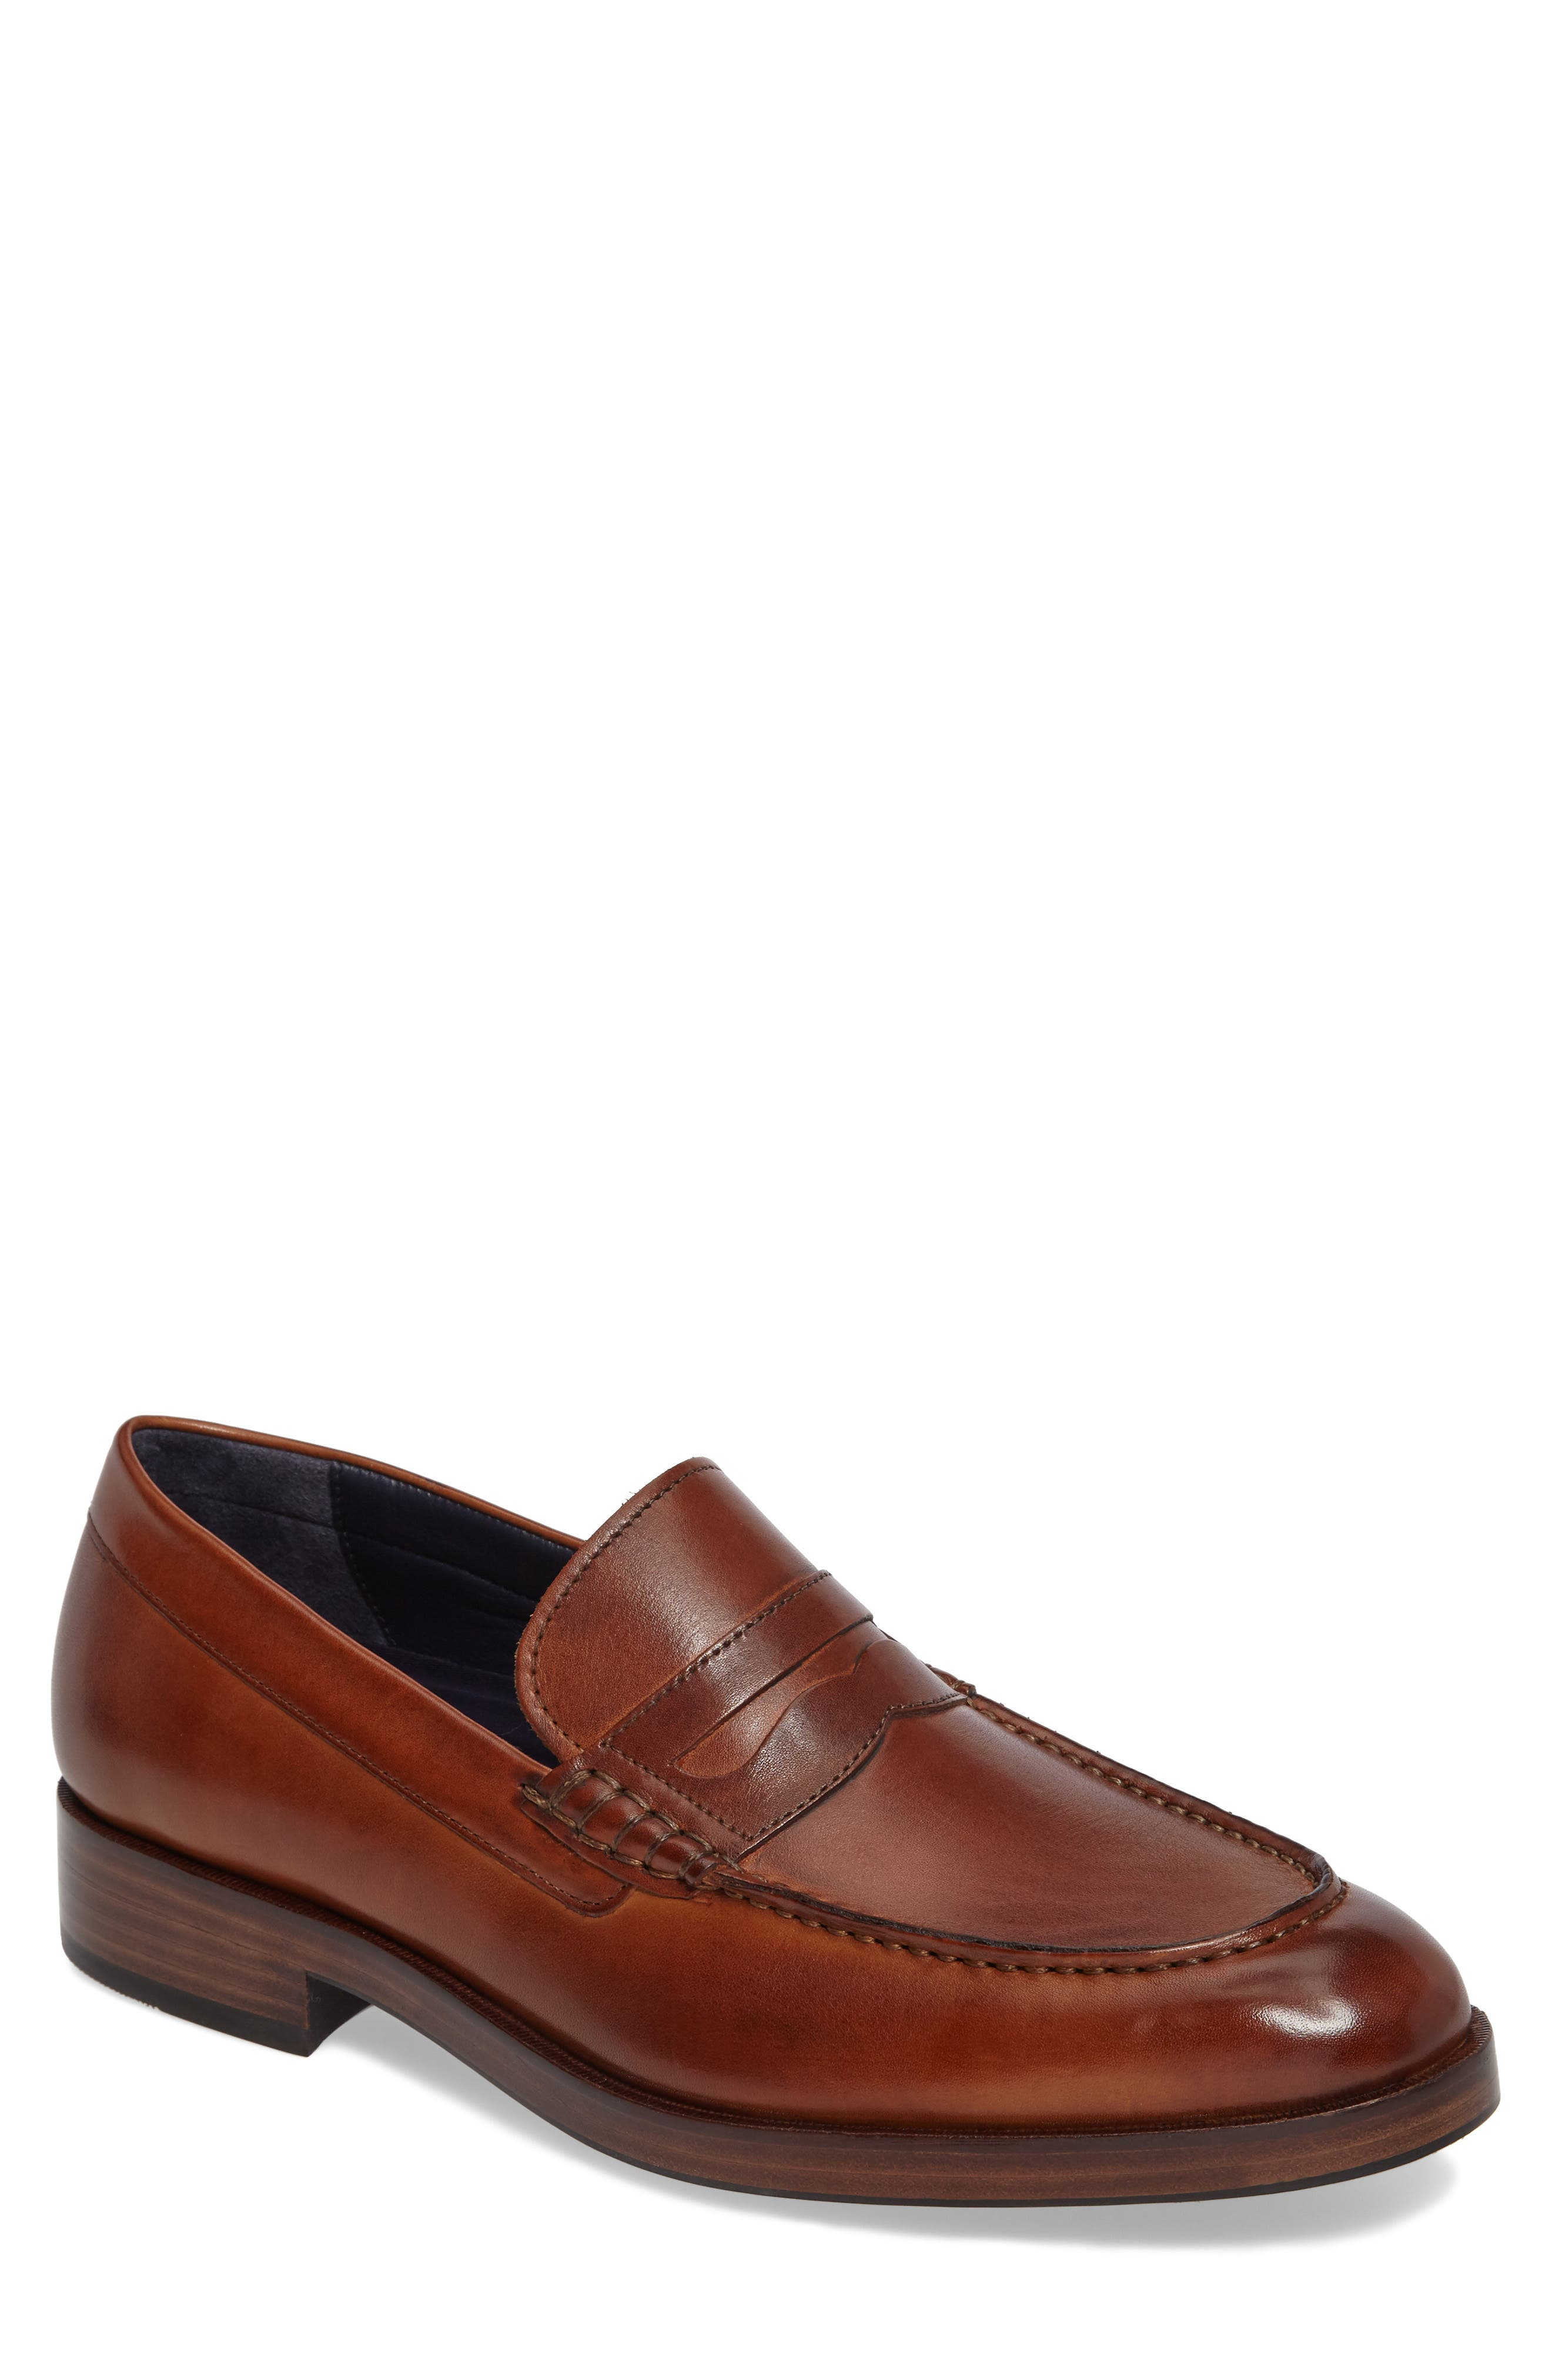 COLE HAAN Harrison Grand Penny Loafer, Main, color, COGNAC/ DARK NATURAL LEATHER